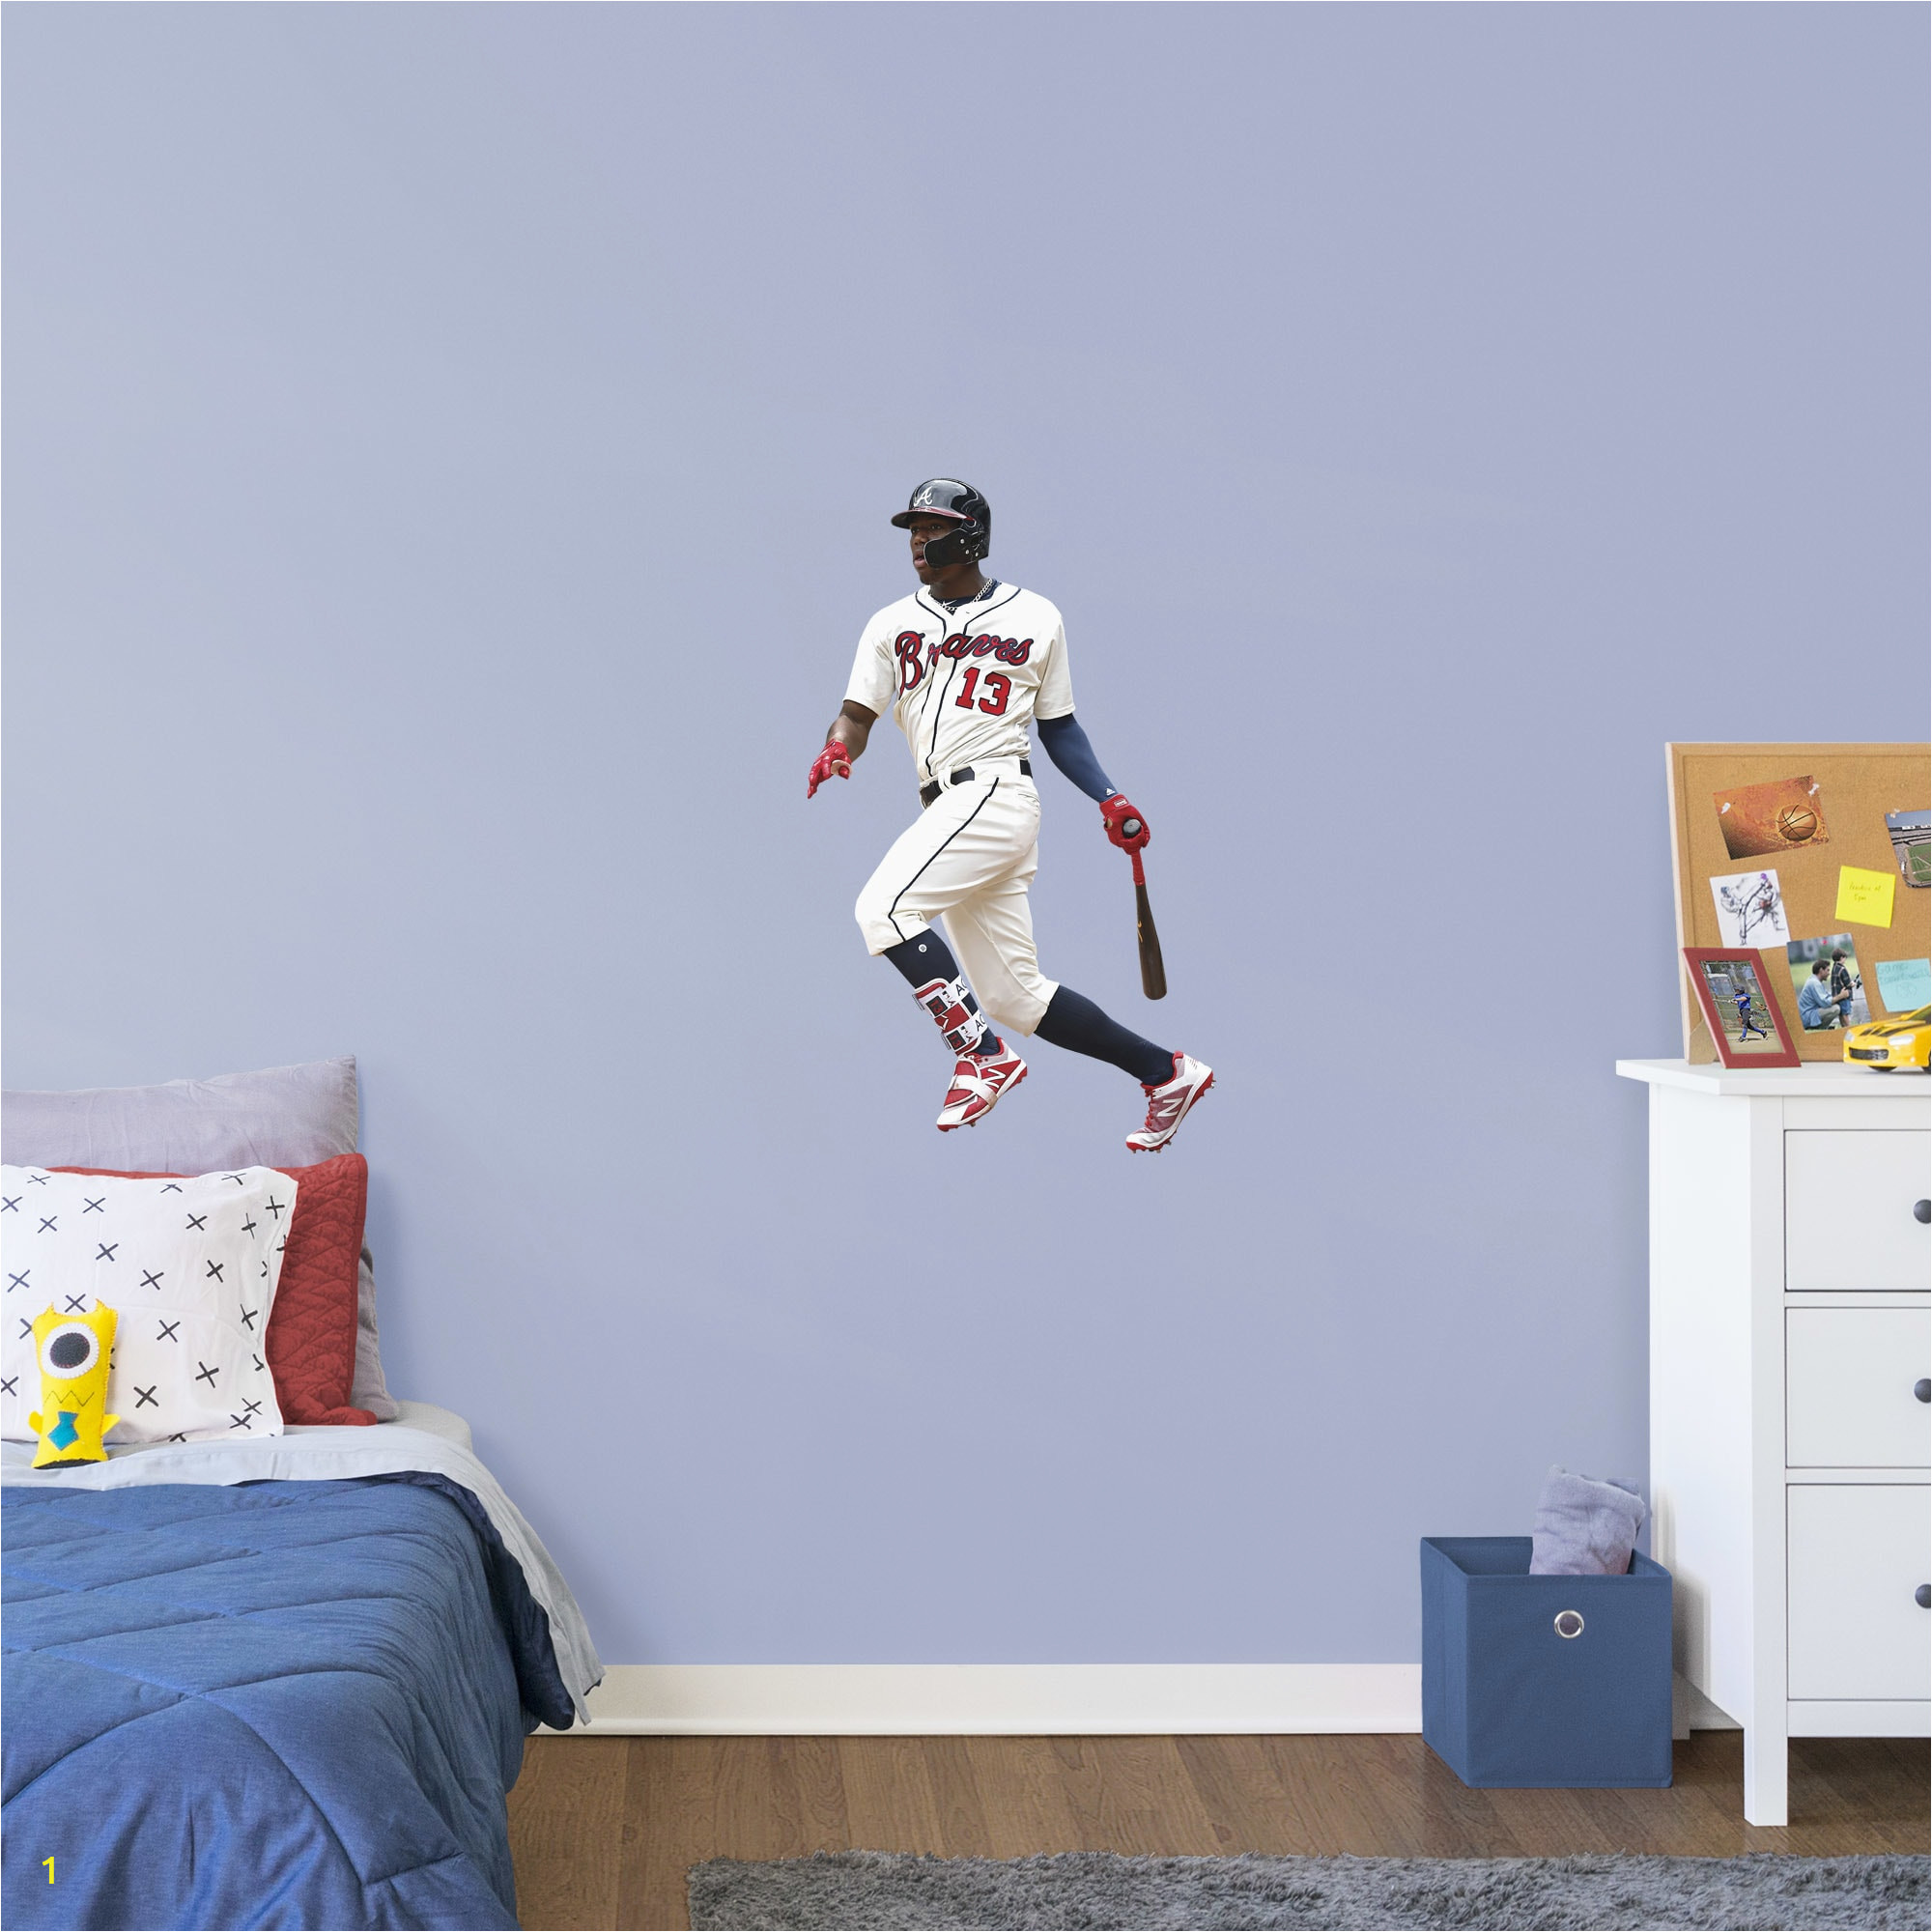 Atlanta Braves Wall Mural Ronald Acu±a Jr Life Size Ficially Licensed Mlb